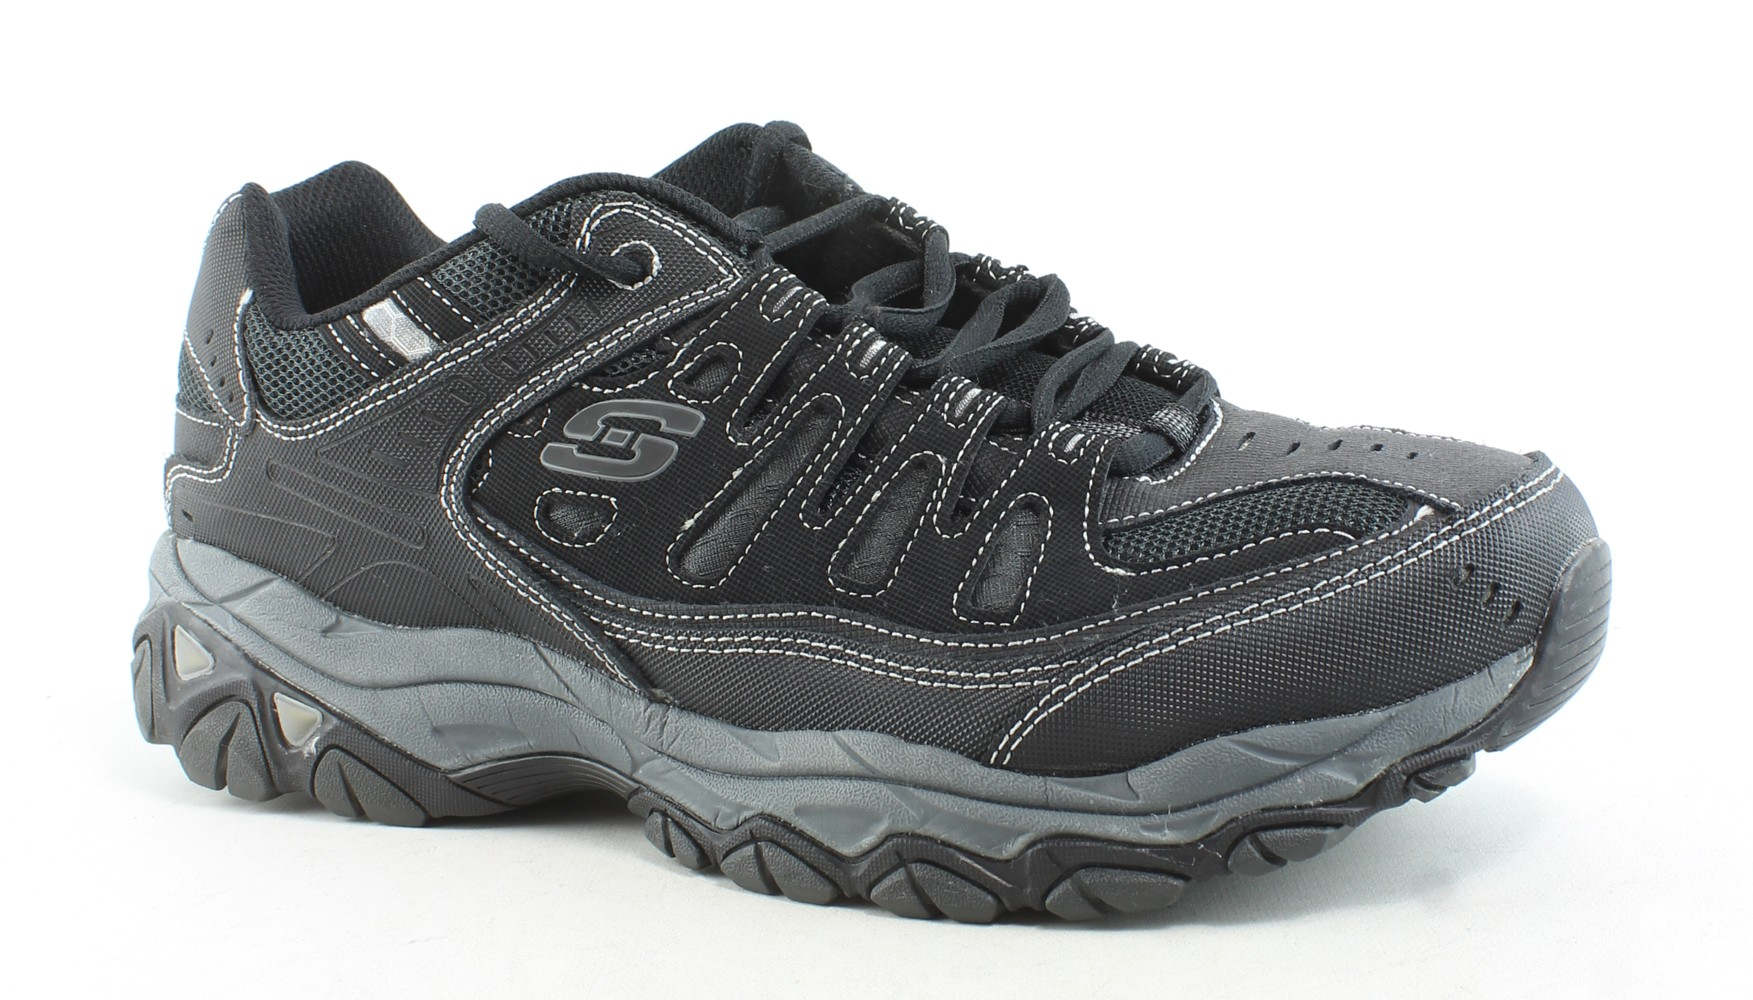 818308a88b82 Details about Skechers Mens Verse Flashpoint Black Gray Walking Shoes Size  12 (E